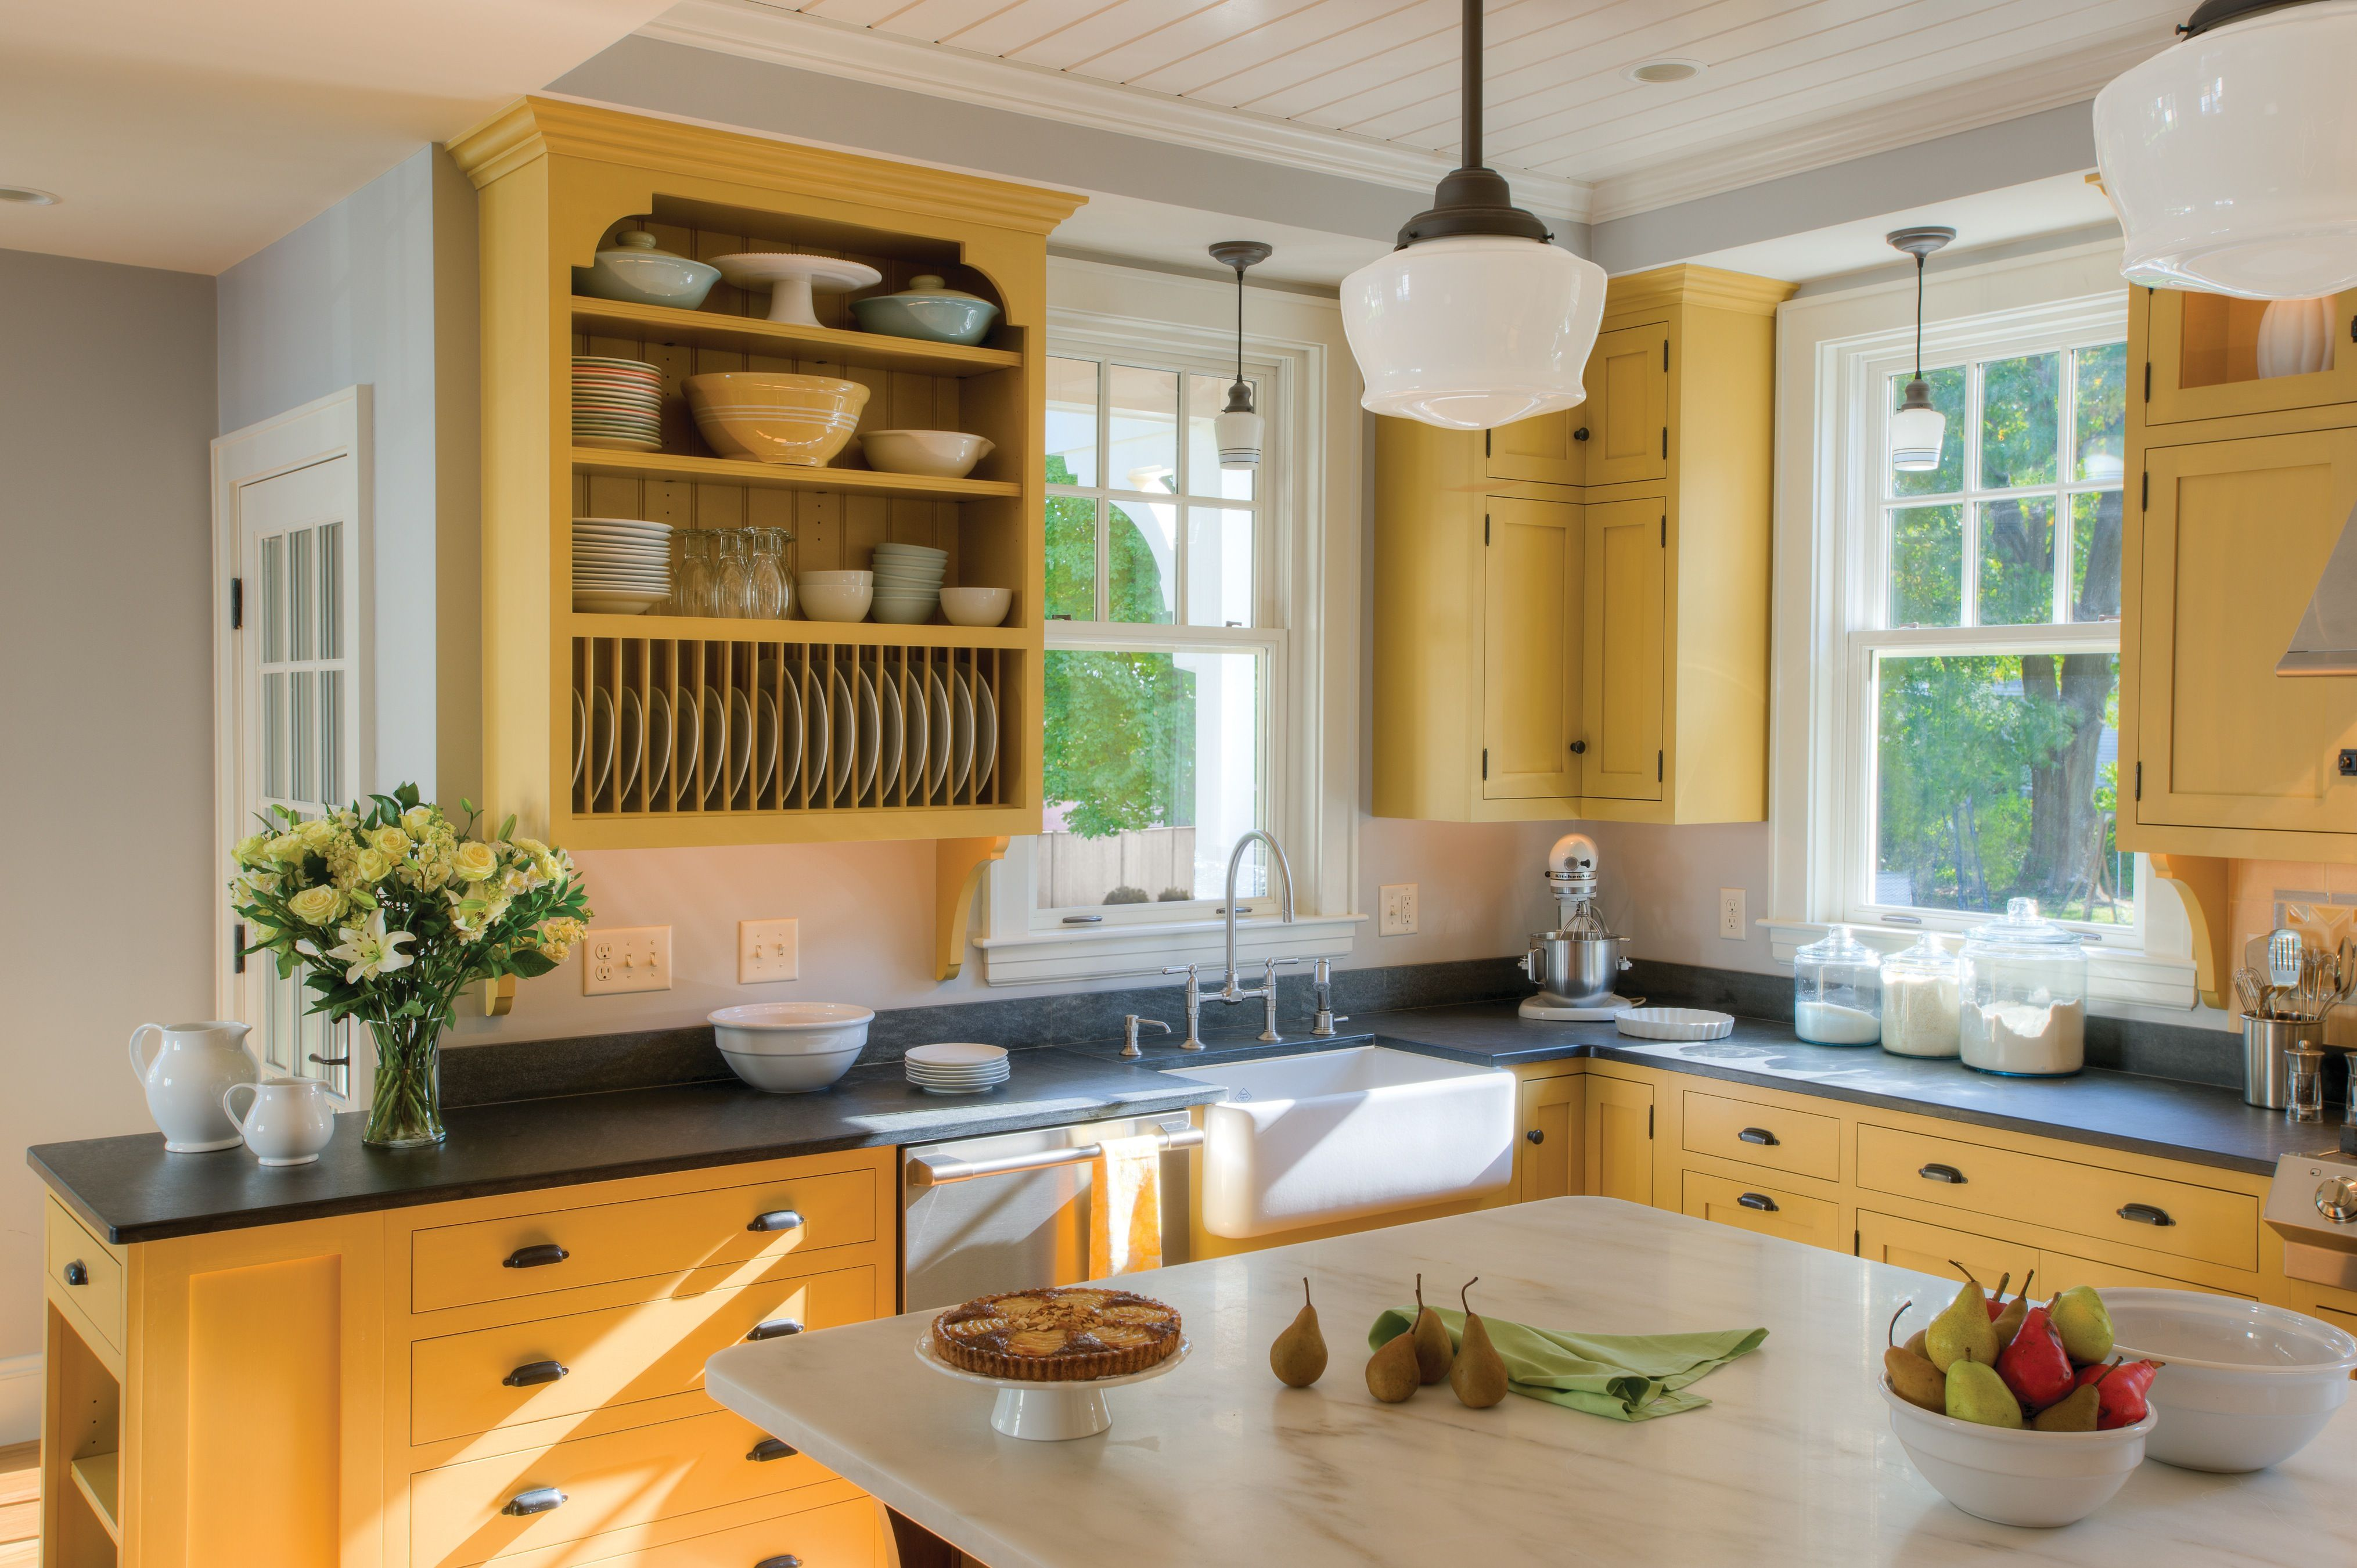 Milk Paint: The Eco-Friendly Option That Everyone Should Know